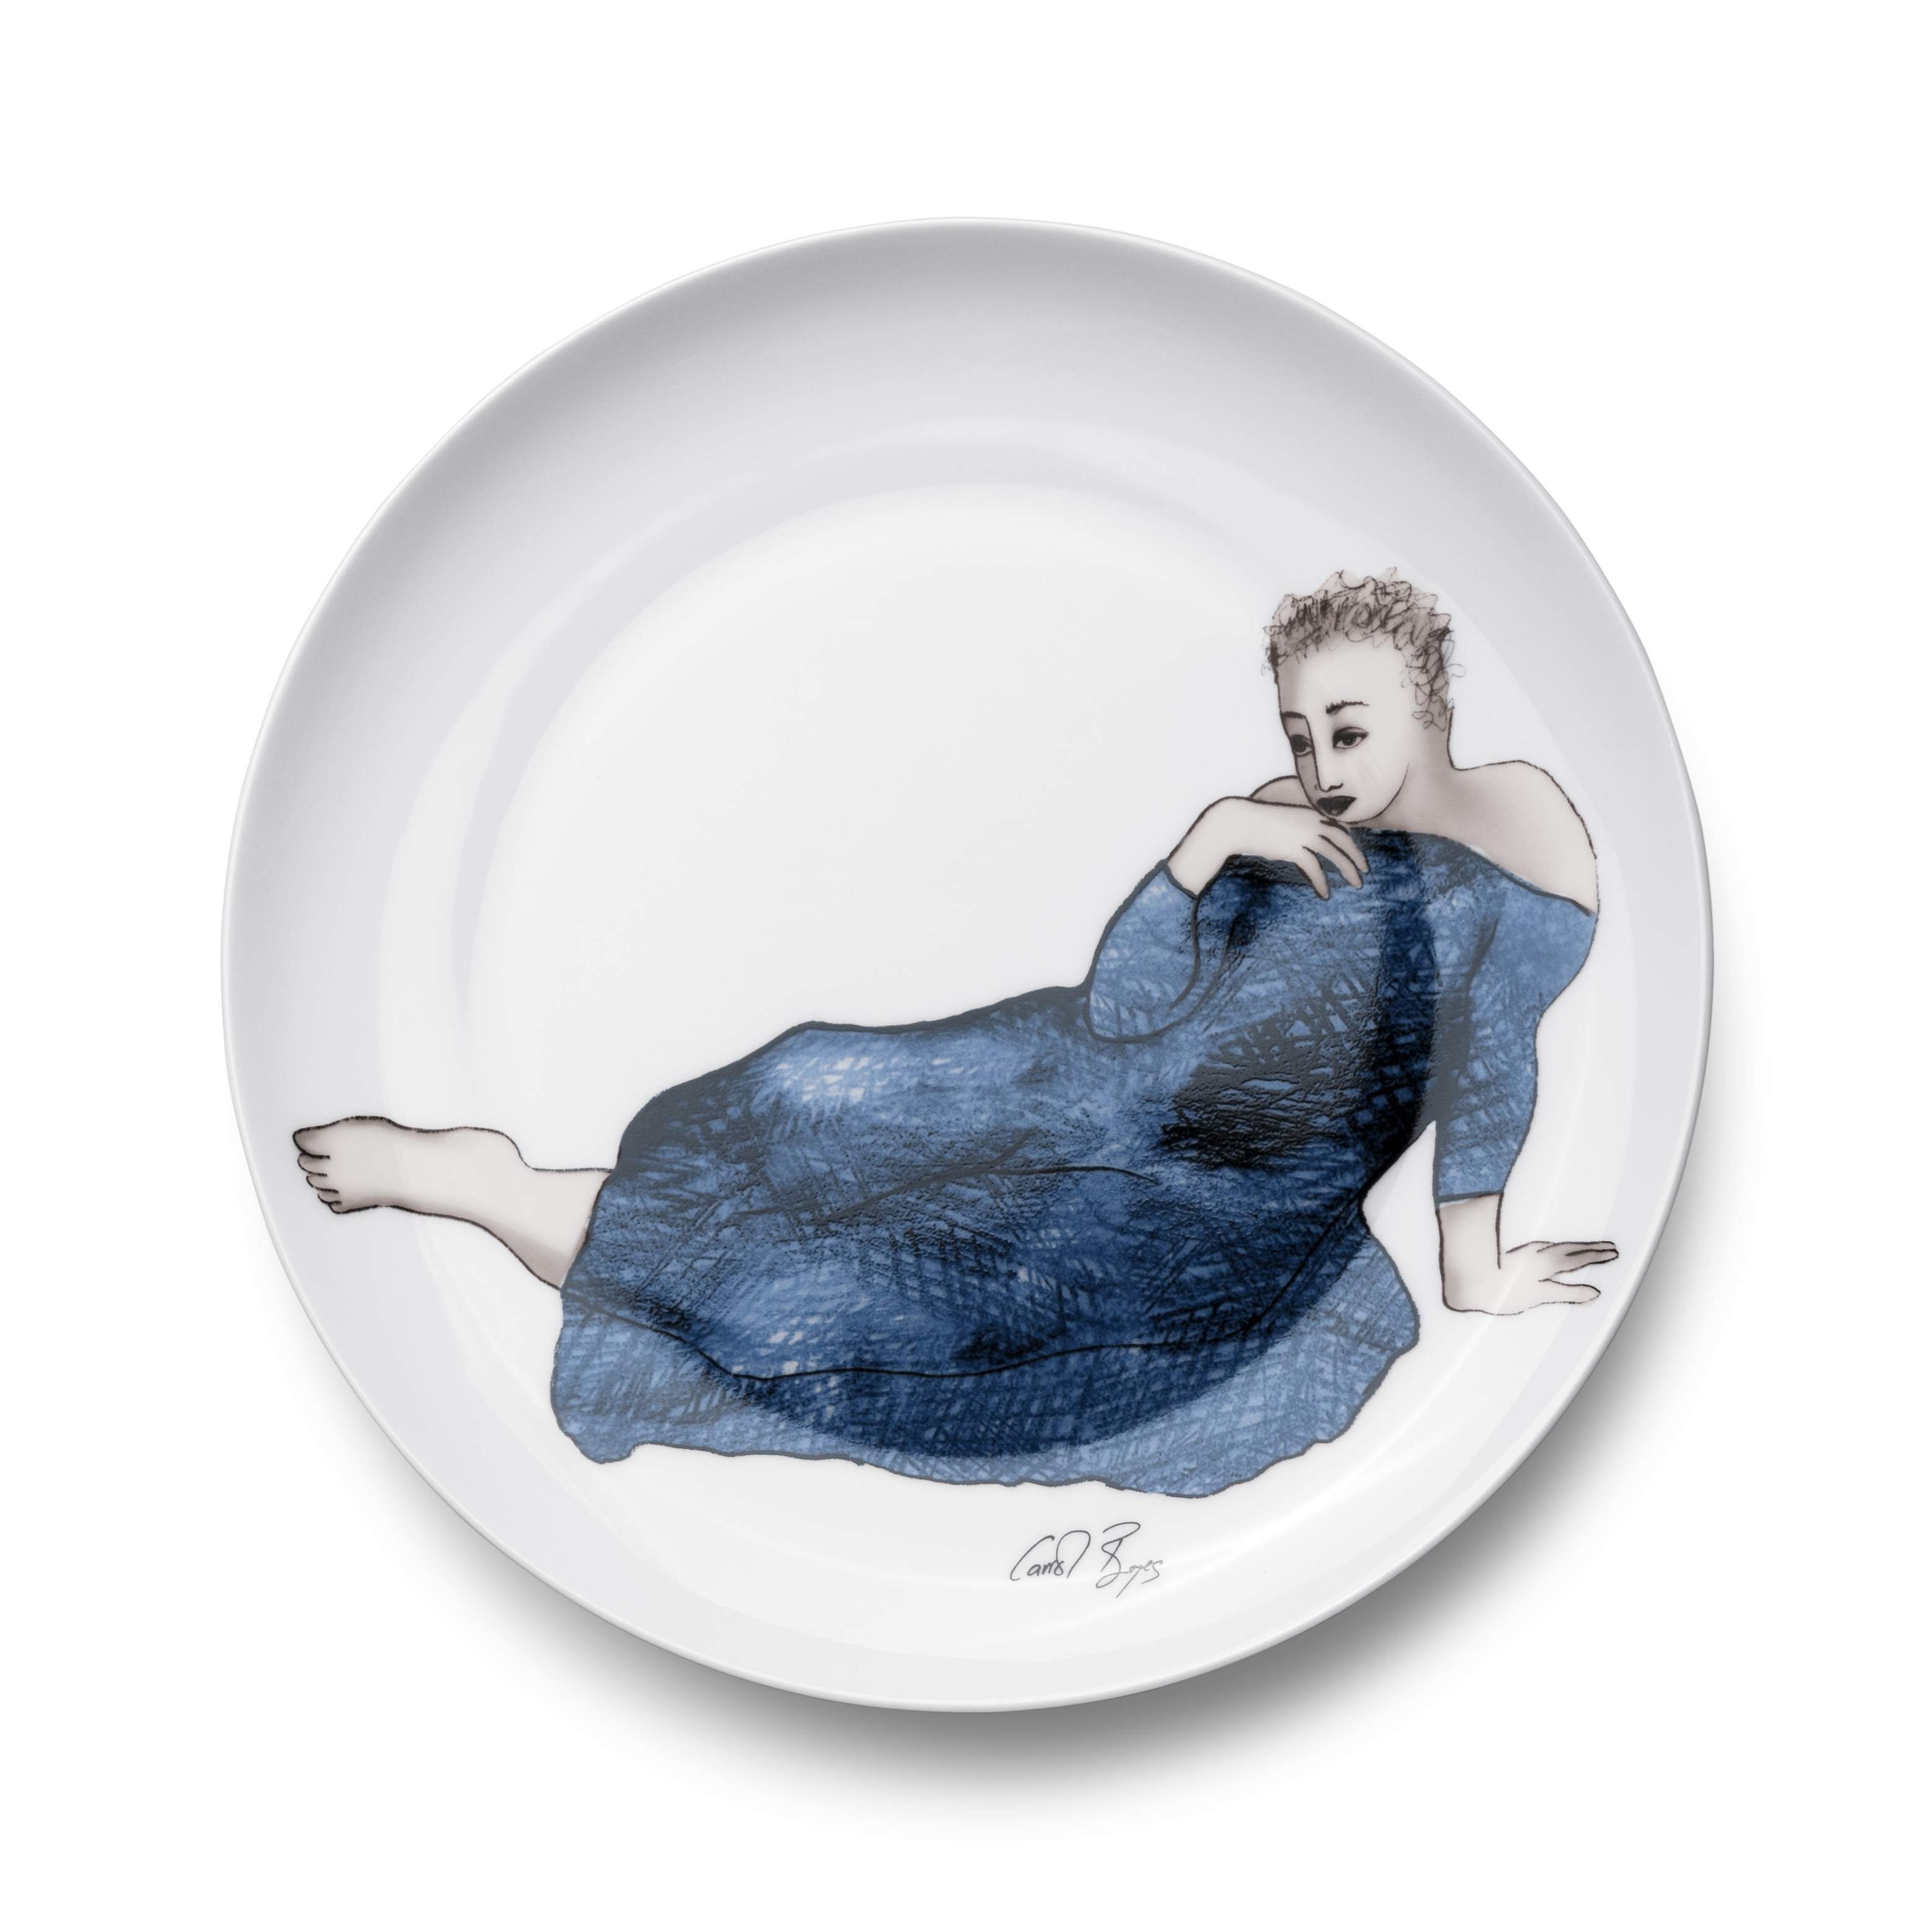 DINNER PLATE SET OF 4 - enticing